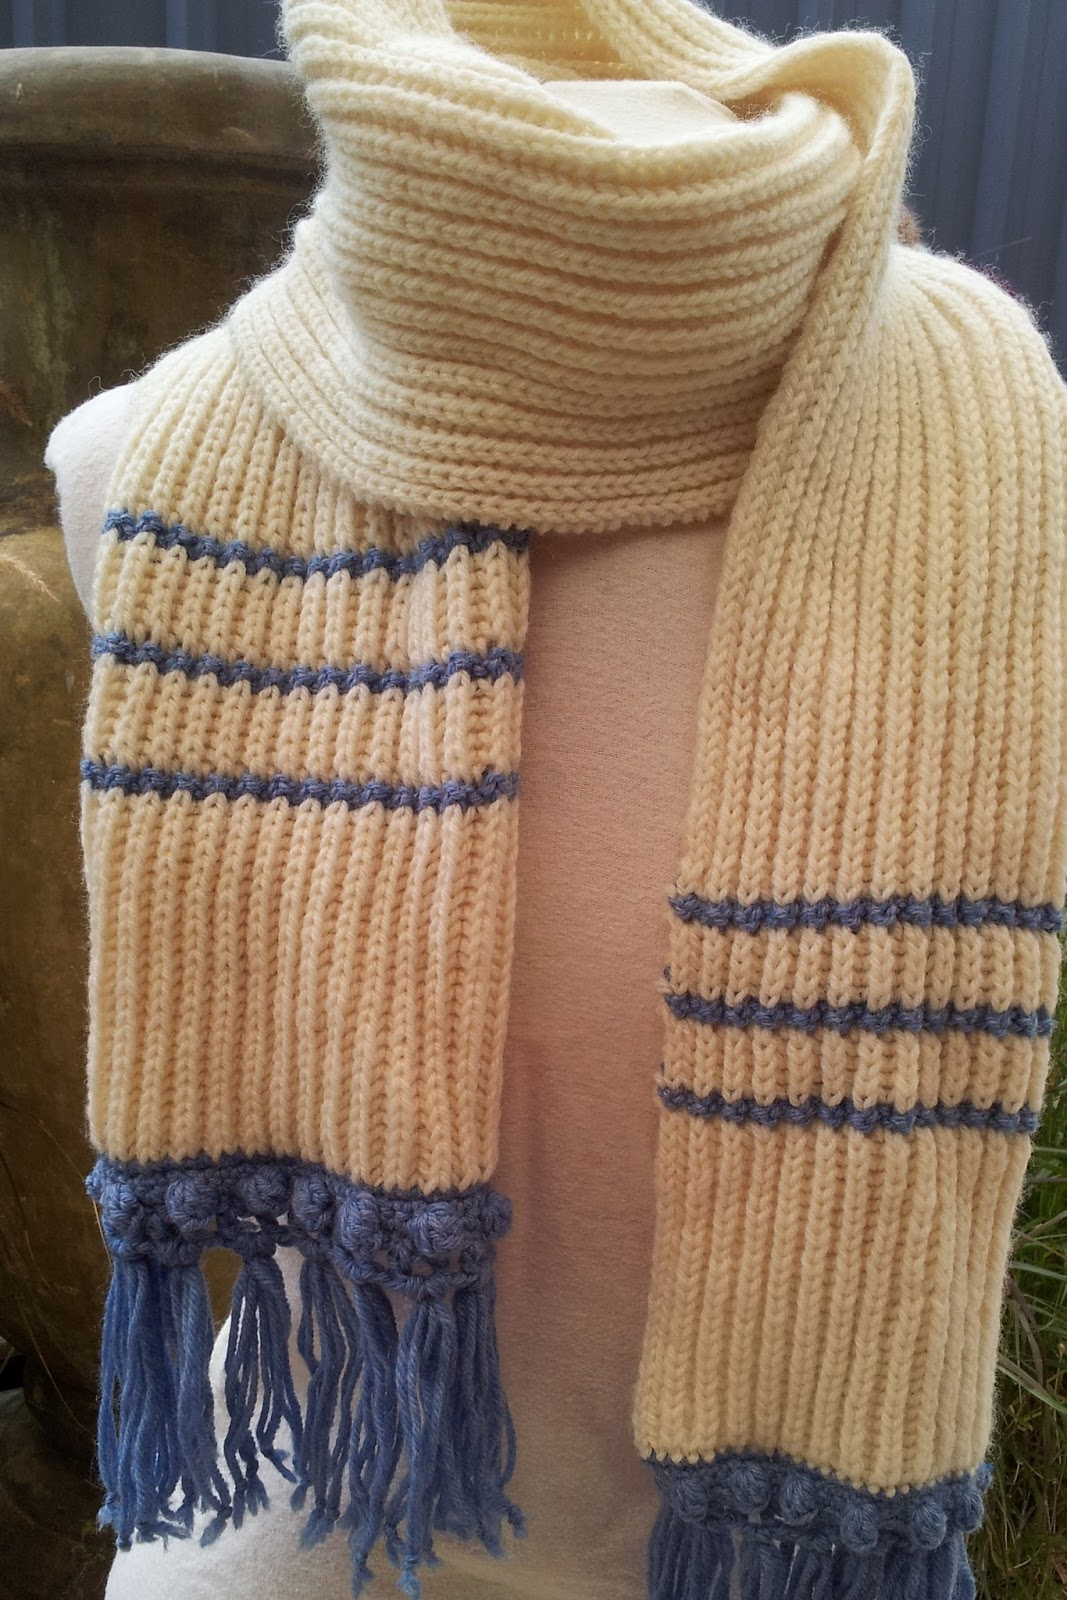 FitzBirch Crafts: Off to Canada Scarf